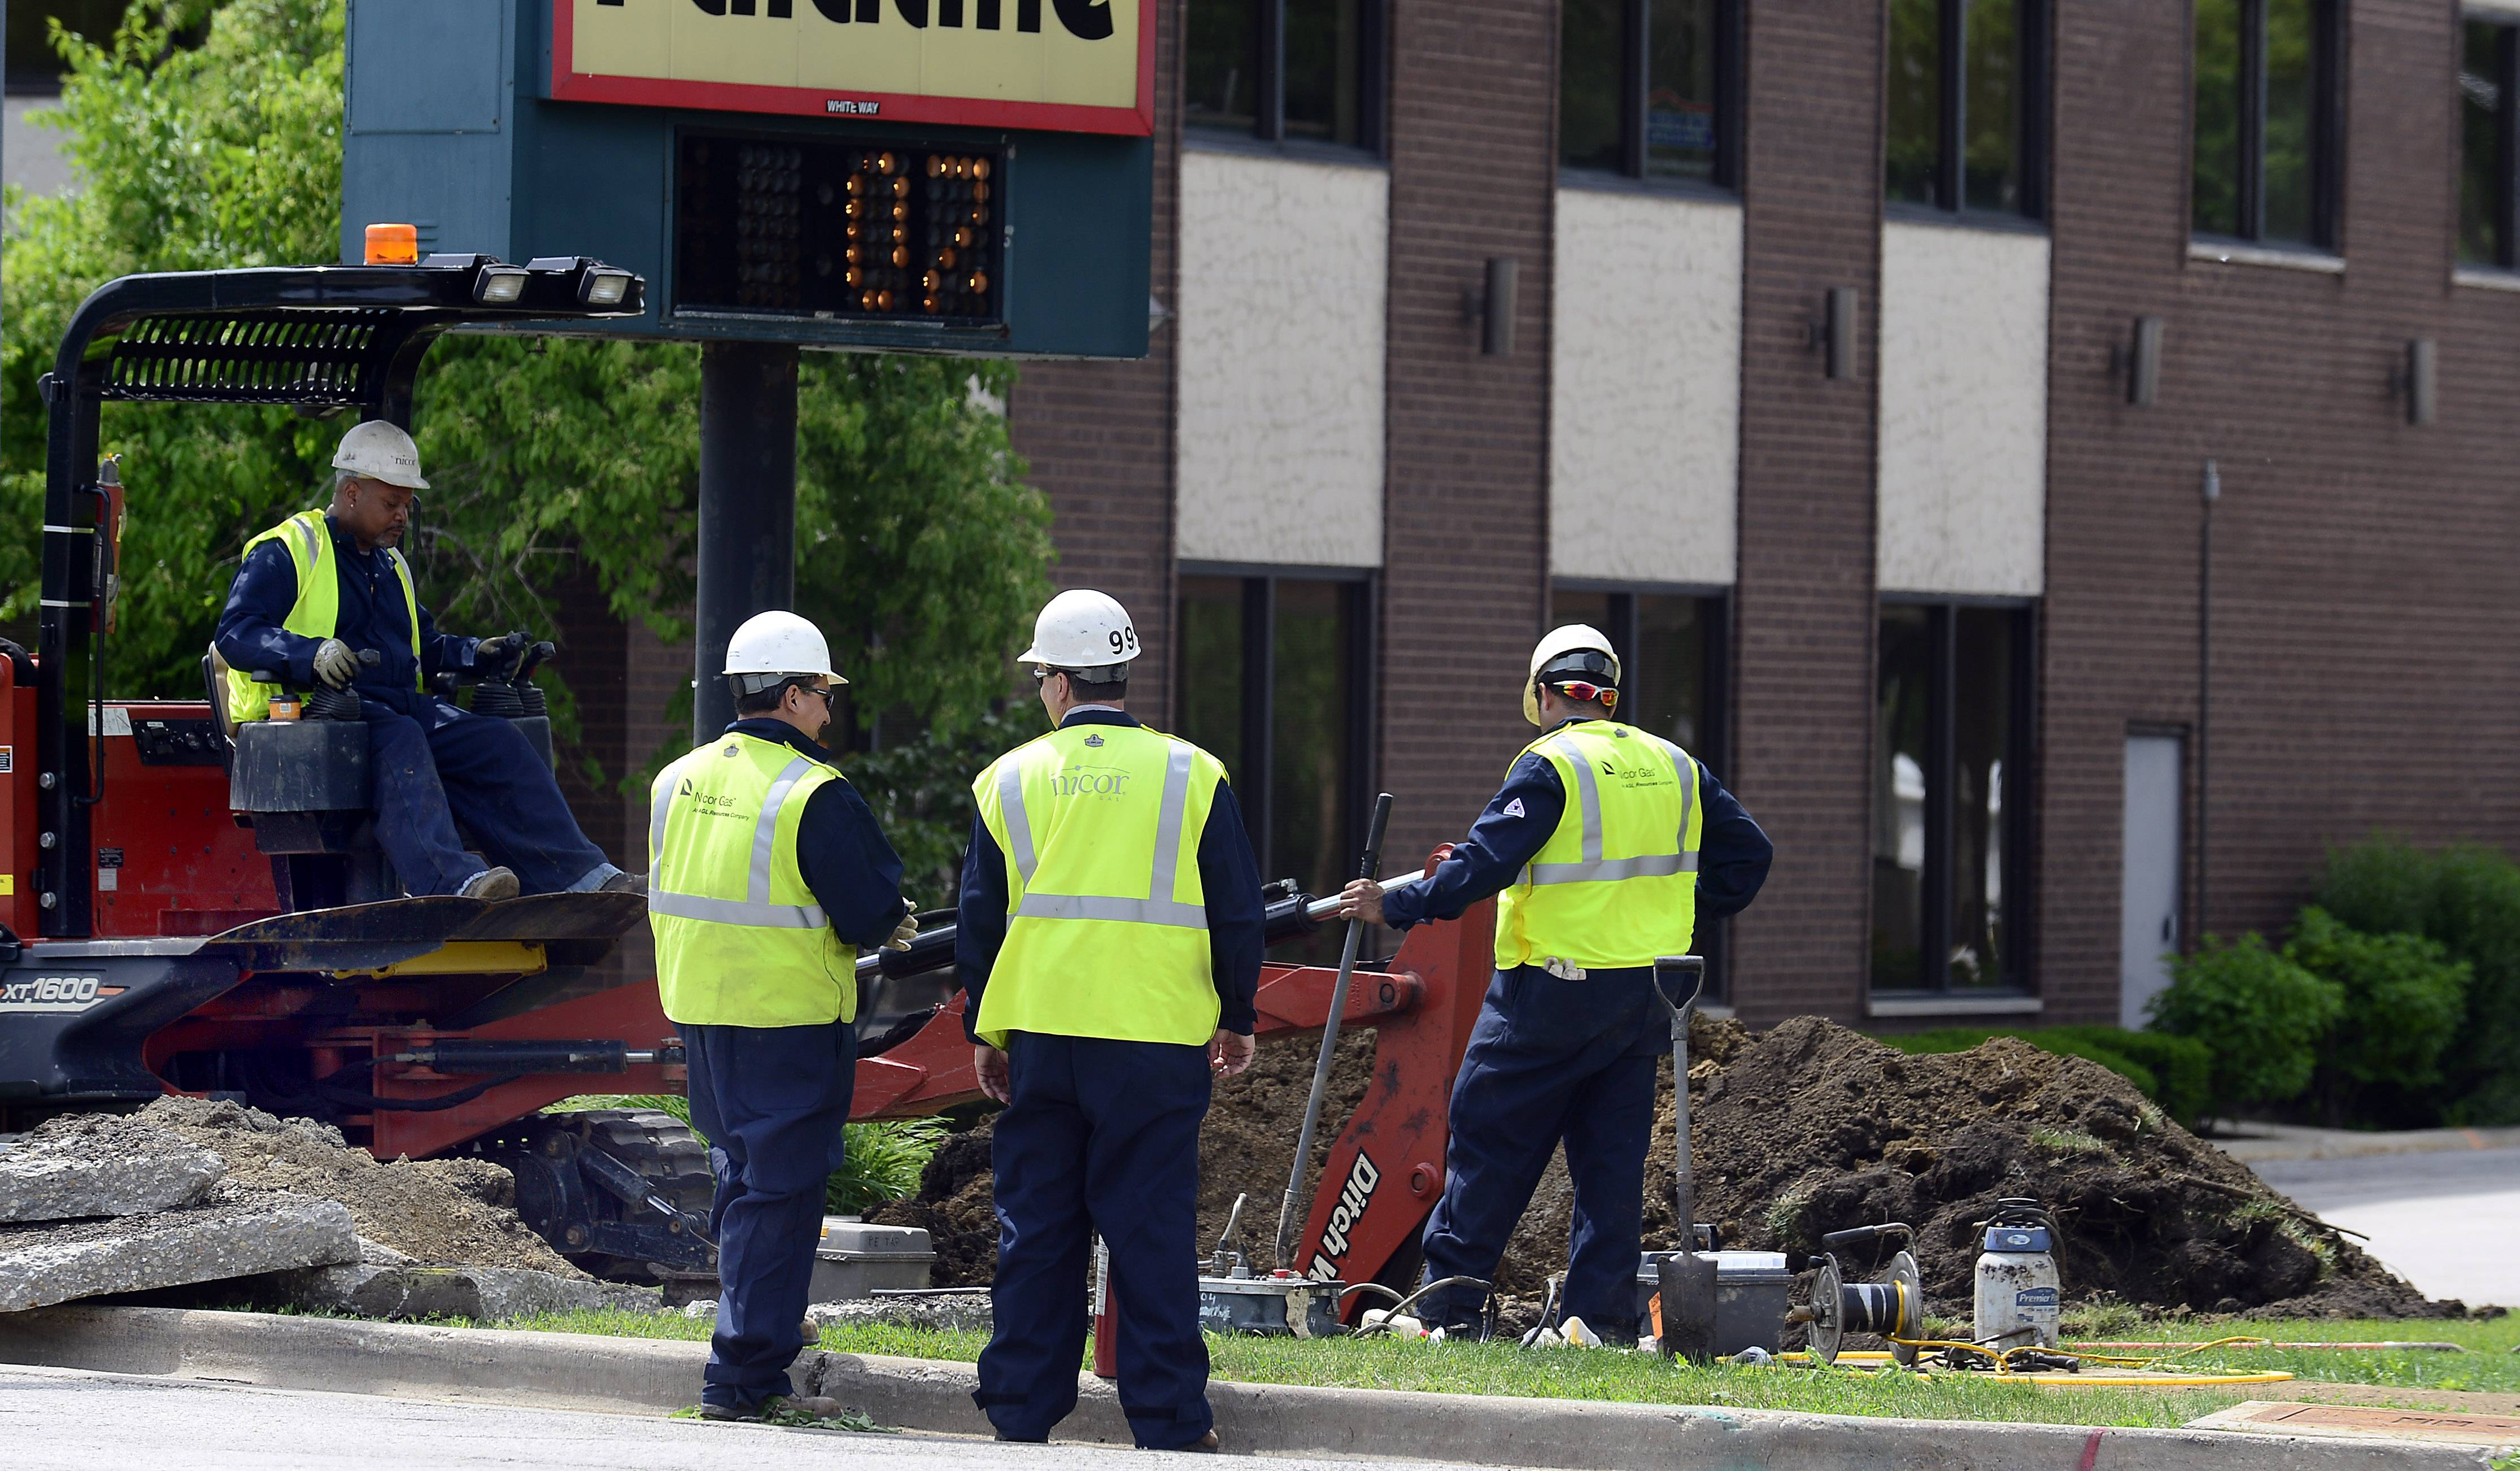 Traffic was rerouted off Northwest Highway while crews targeted a gas leak Tuesday morning near Plum Grove Road. Crews remained on the scene into the afternoon, but the roads were reopened to traffic.